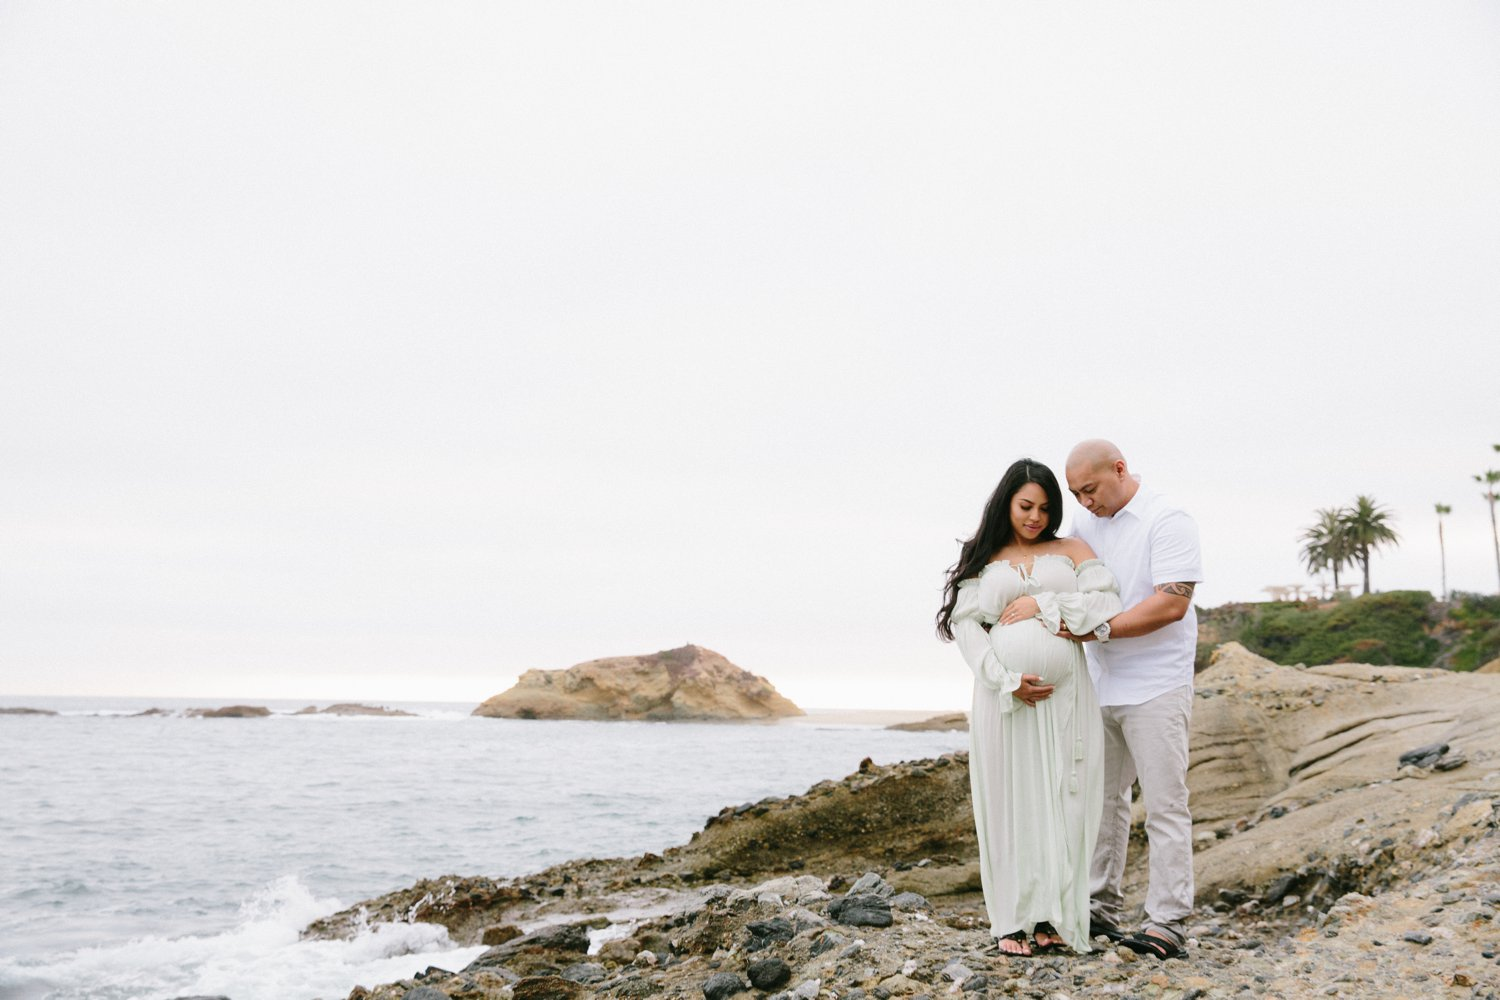 Laguna Beach Maternity Kevin Le Vu Photography-28.jpg